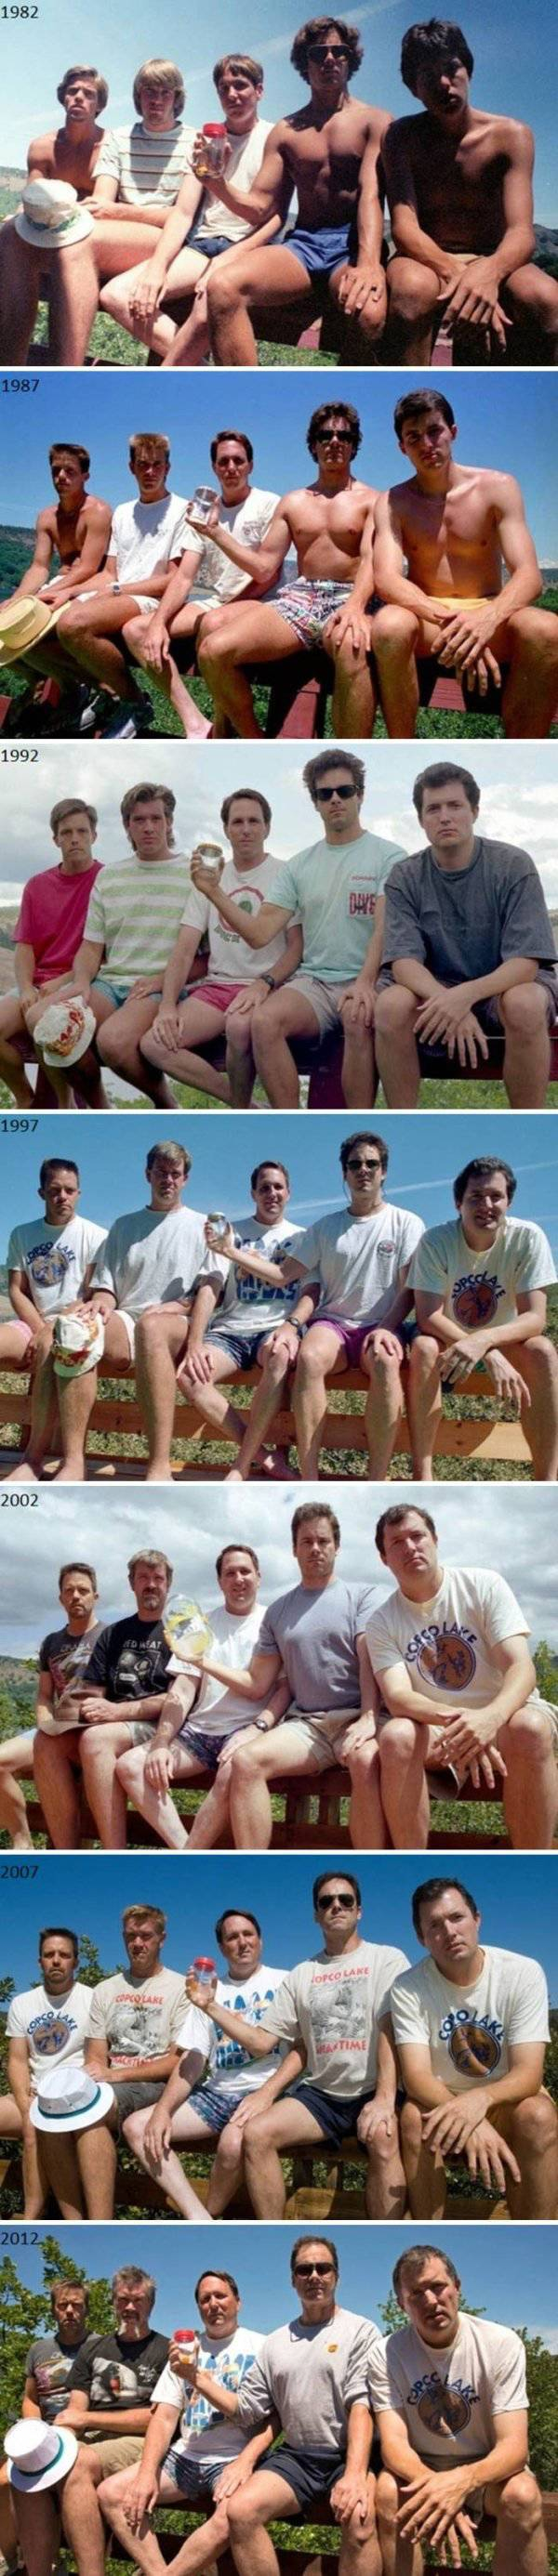 Years Didn't Change Them At All!